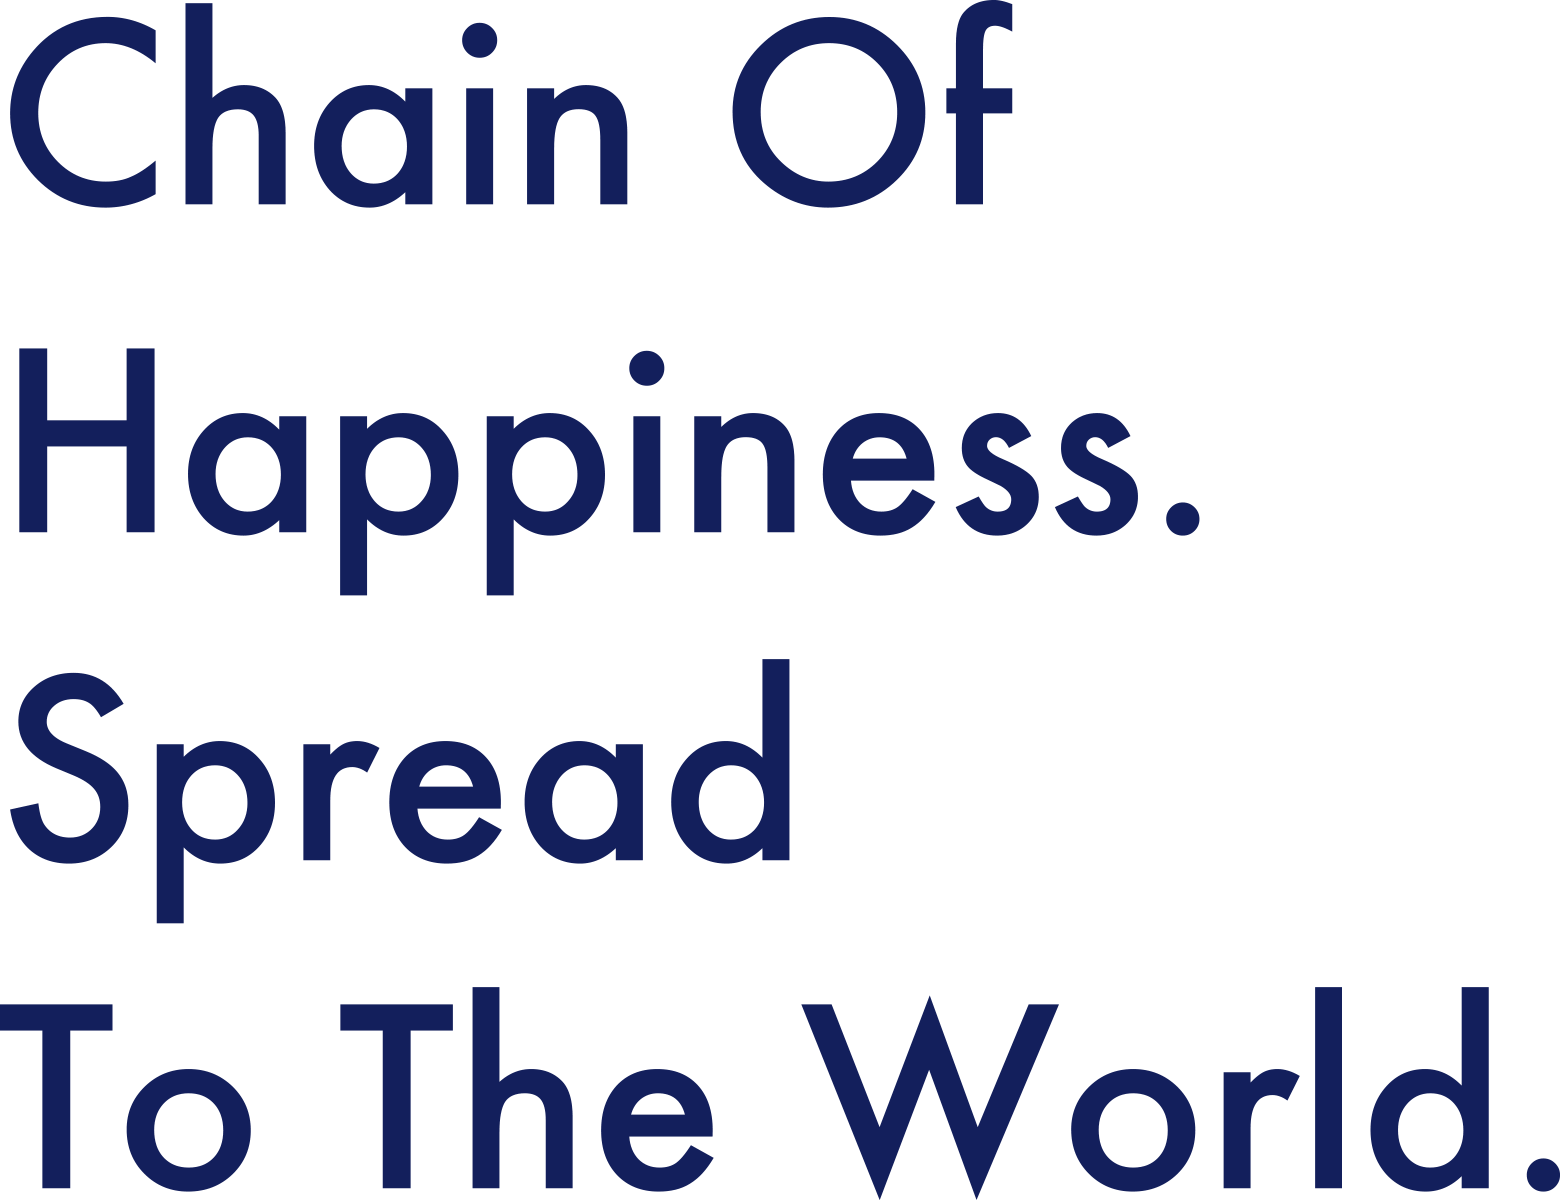 Chain Of Happiness Spread To The World.